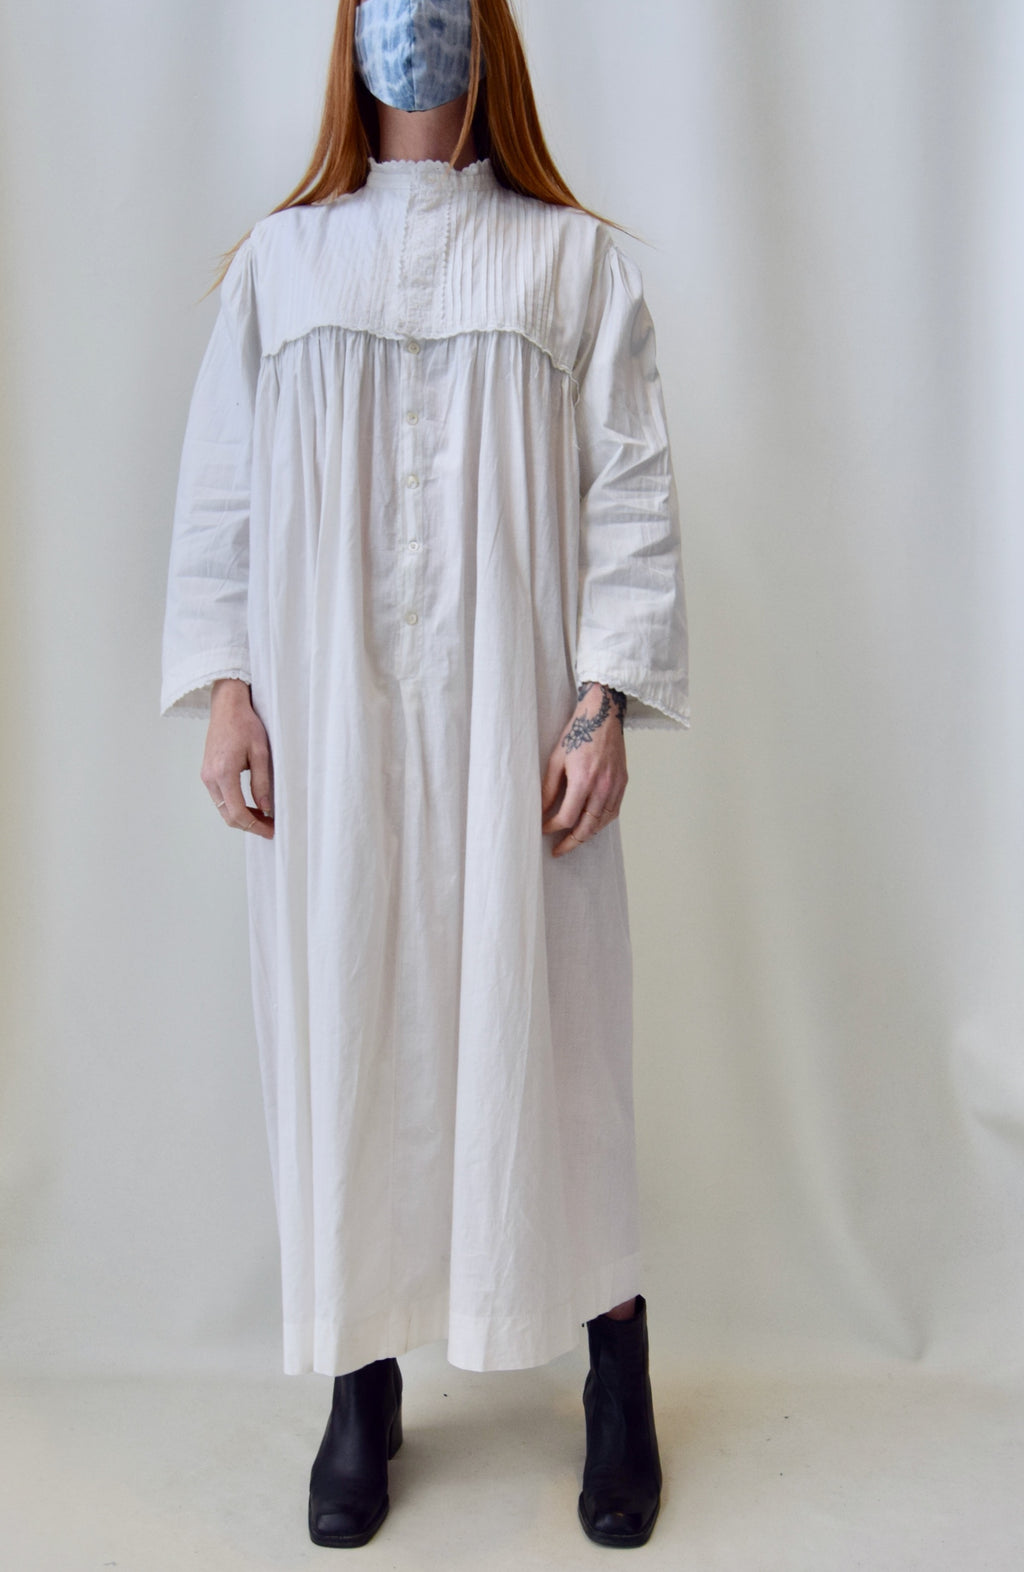 Antique Eyelet Cotton Nightgown